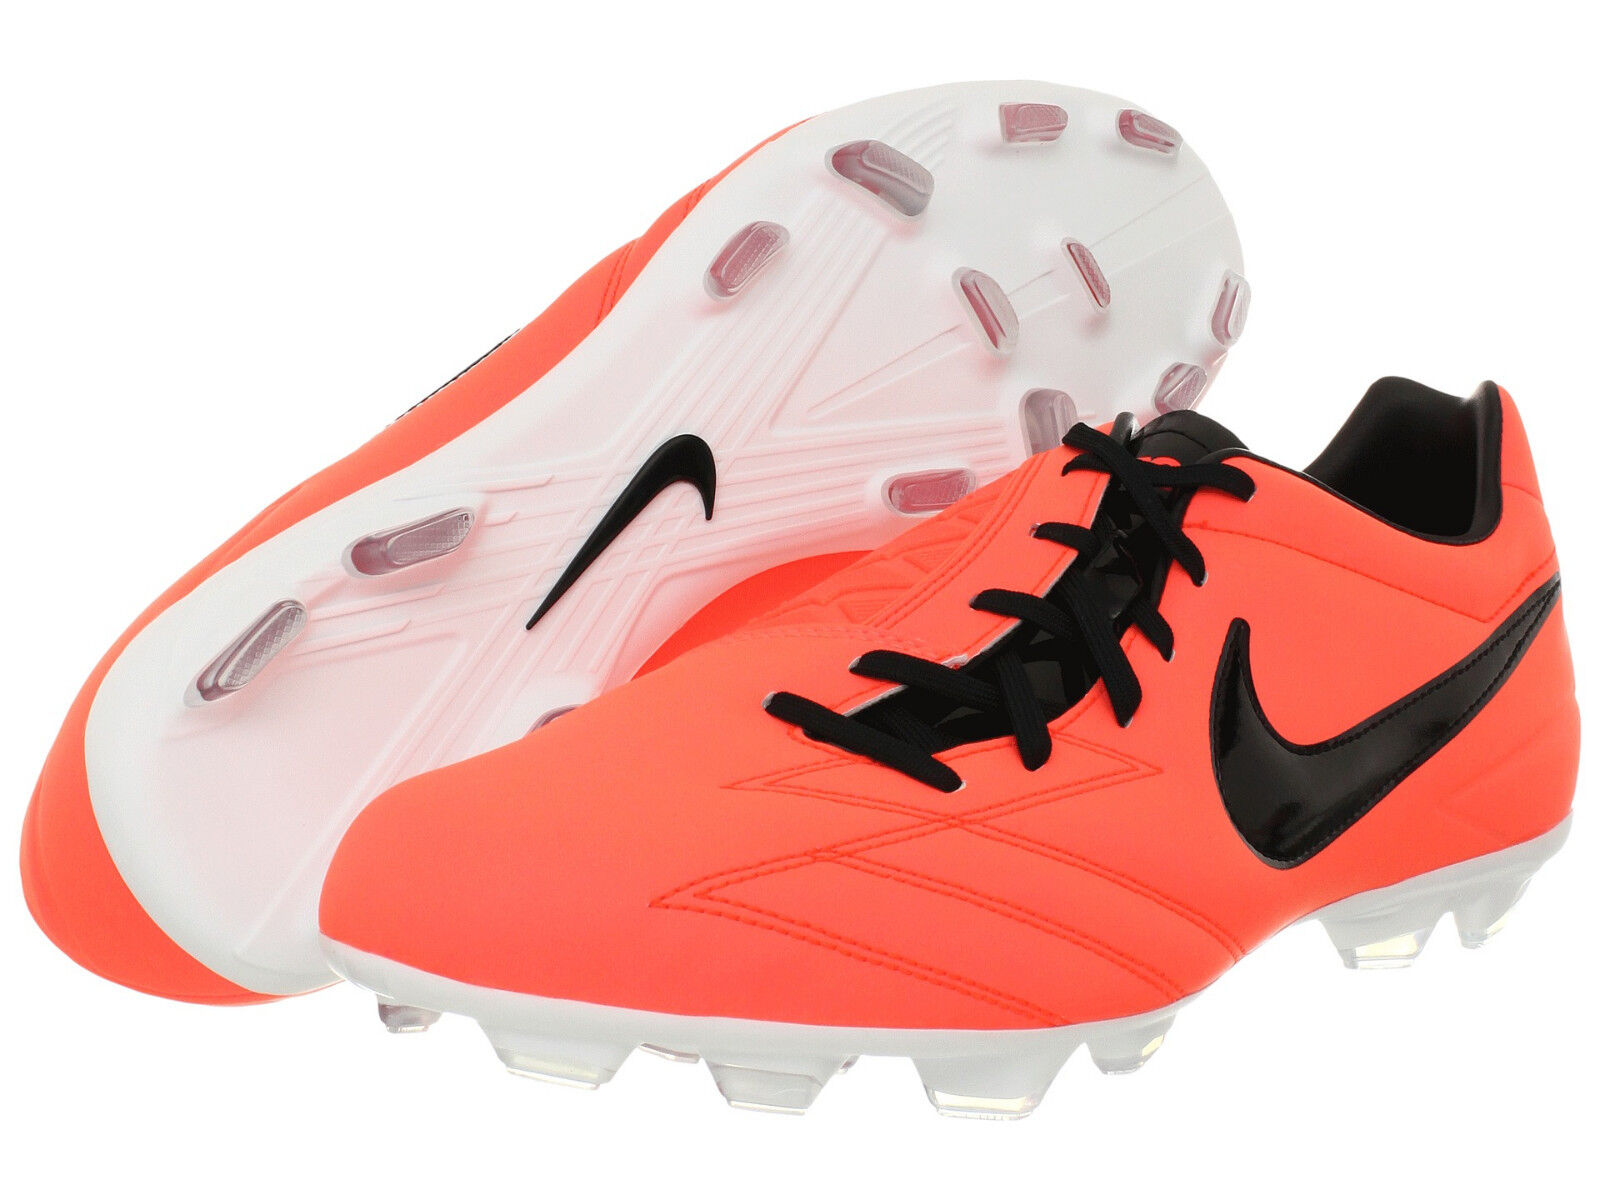 Nike Total 90 Shoot IV FG Soccer shoes 2011 Brand New Mango   Black